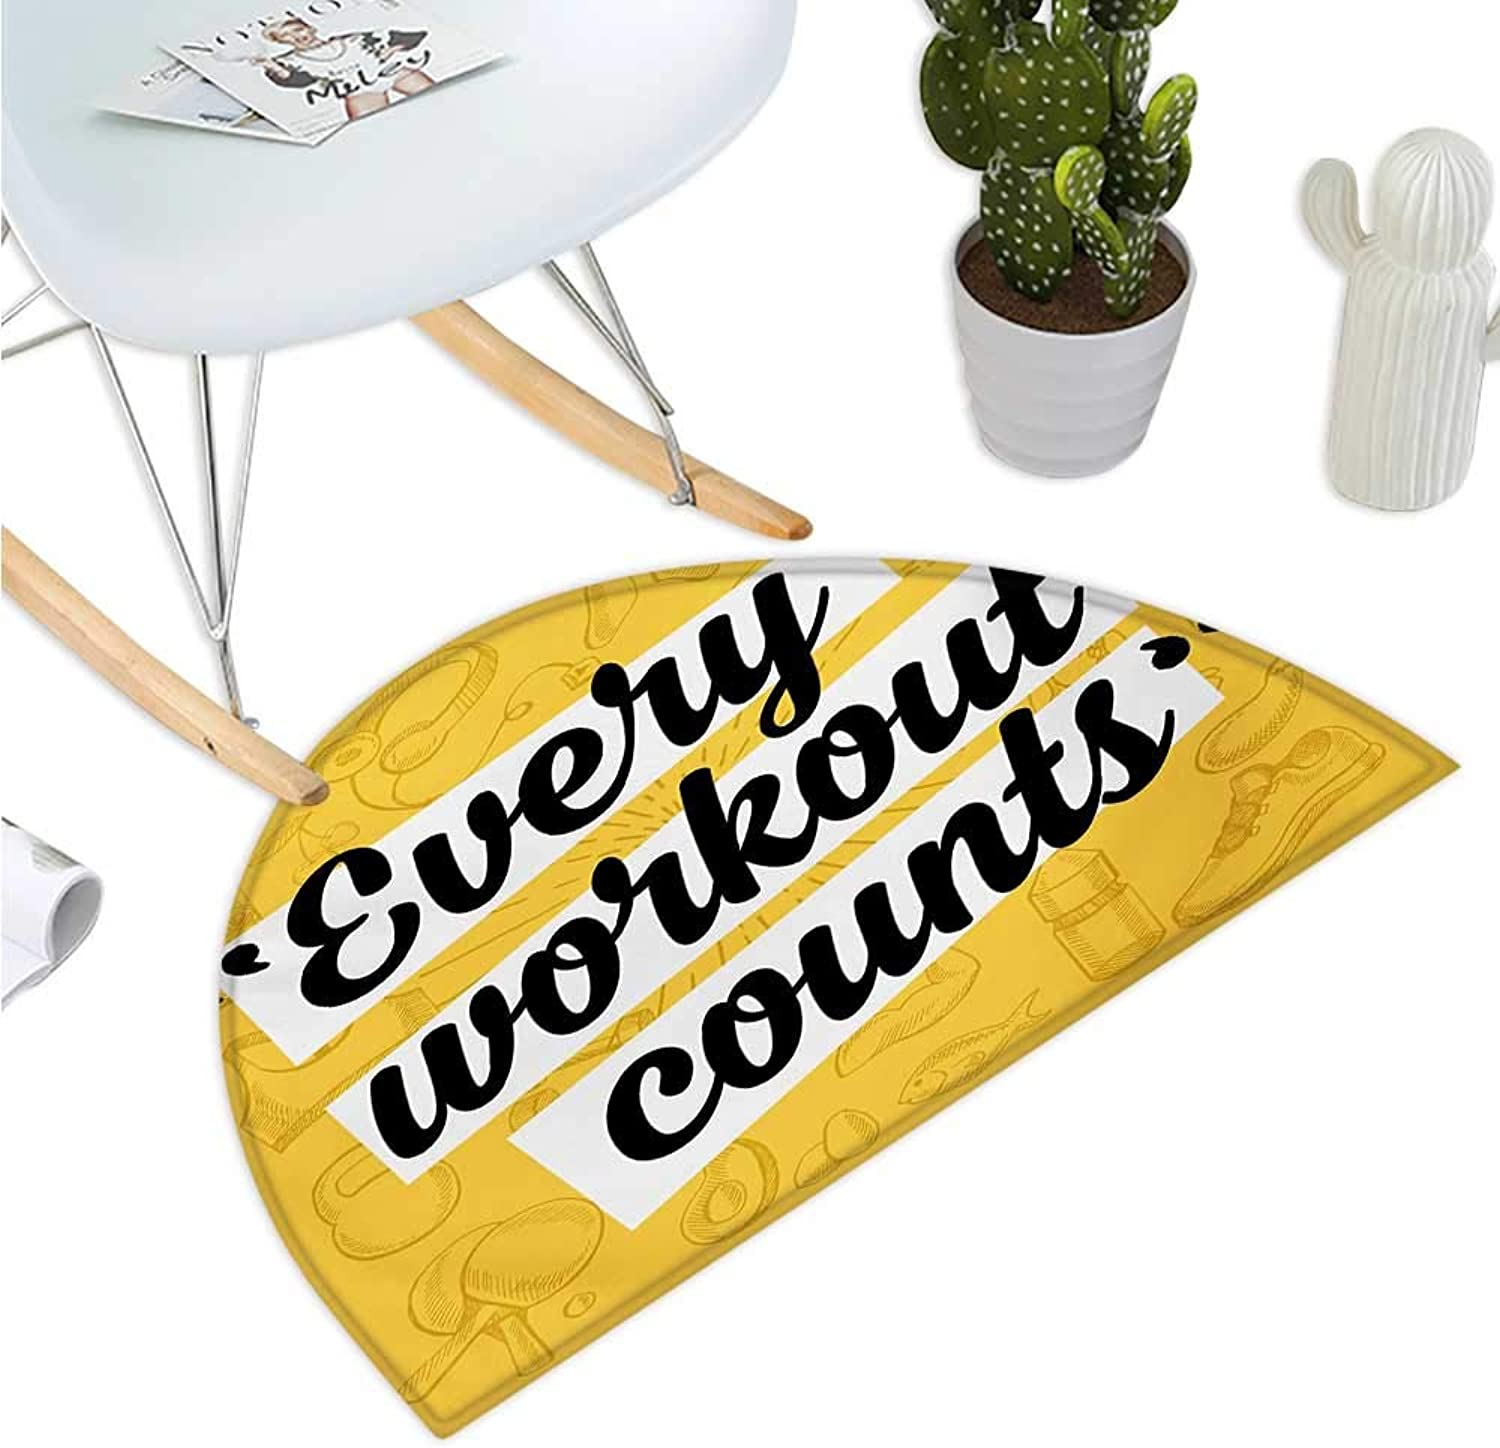 Fitness Half Round Door mats Every Workout Counts Phrase in Quotation Marks Healthy Living Theme Icons Entry Door Mat H 35.4  xD 53.1  Yellow Black White